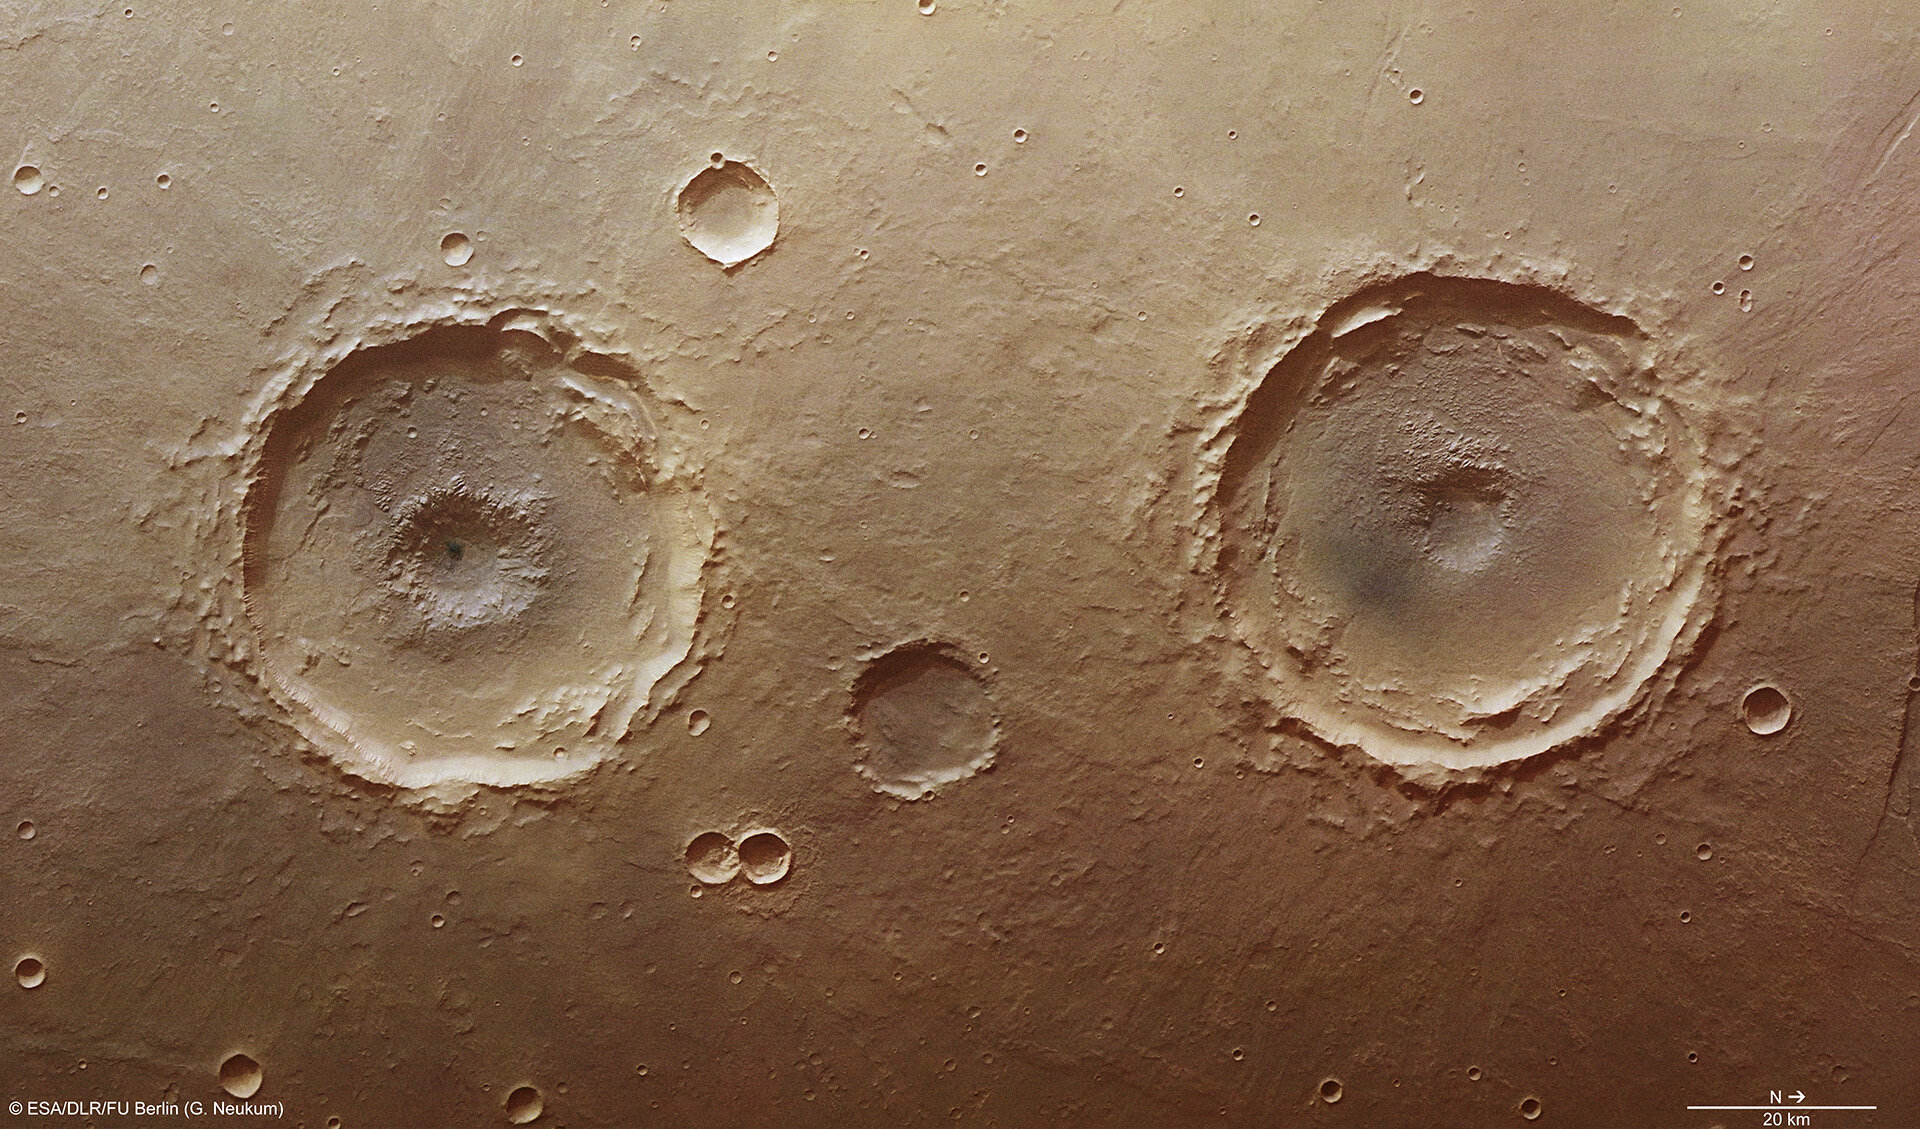 ESA - Explosive crater twins on Mars